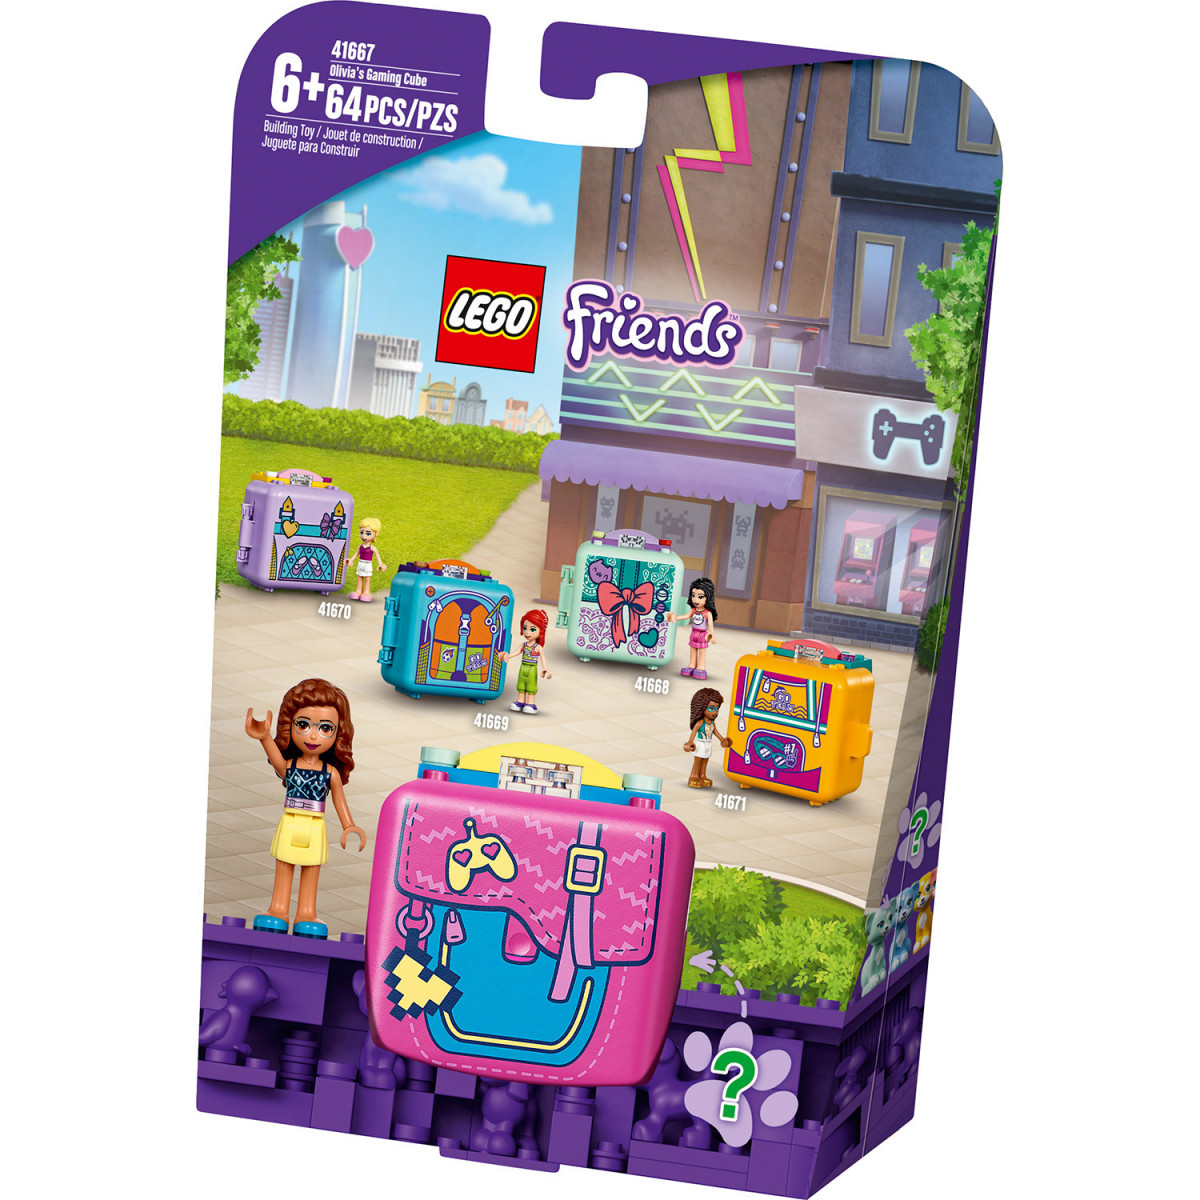 LEGO FRIENDS OLIVIAS GAMING CUBE